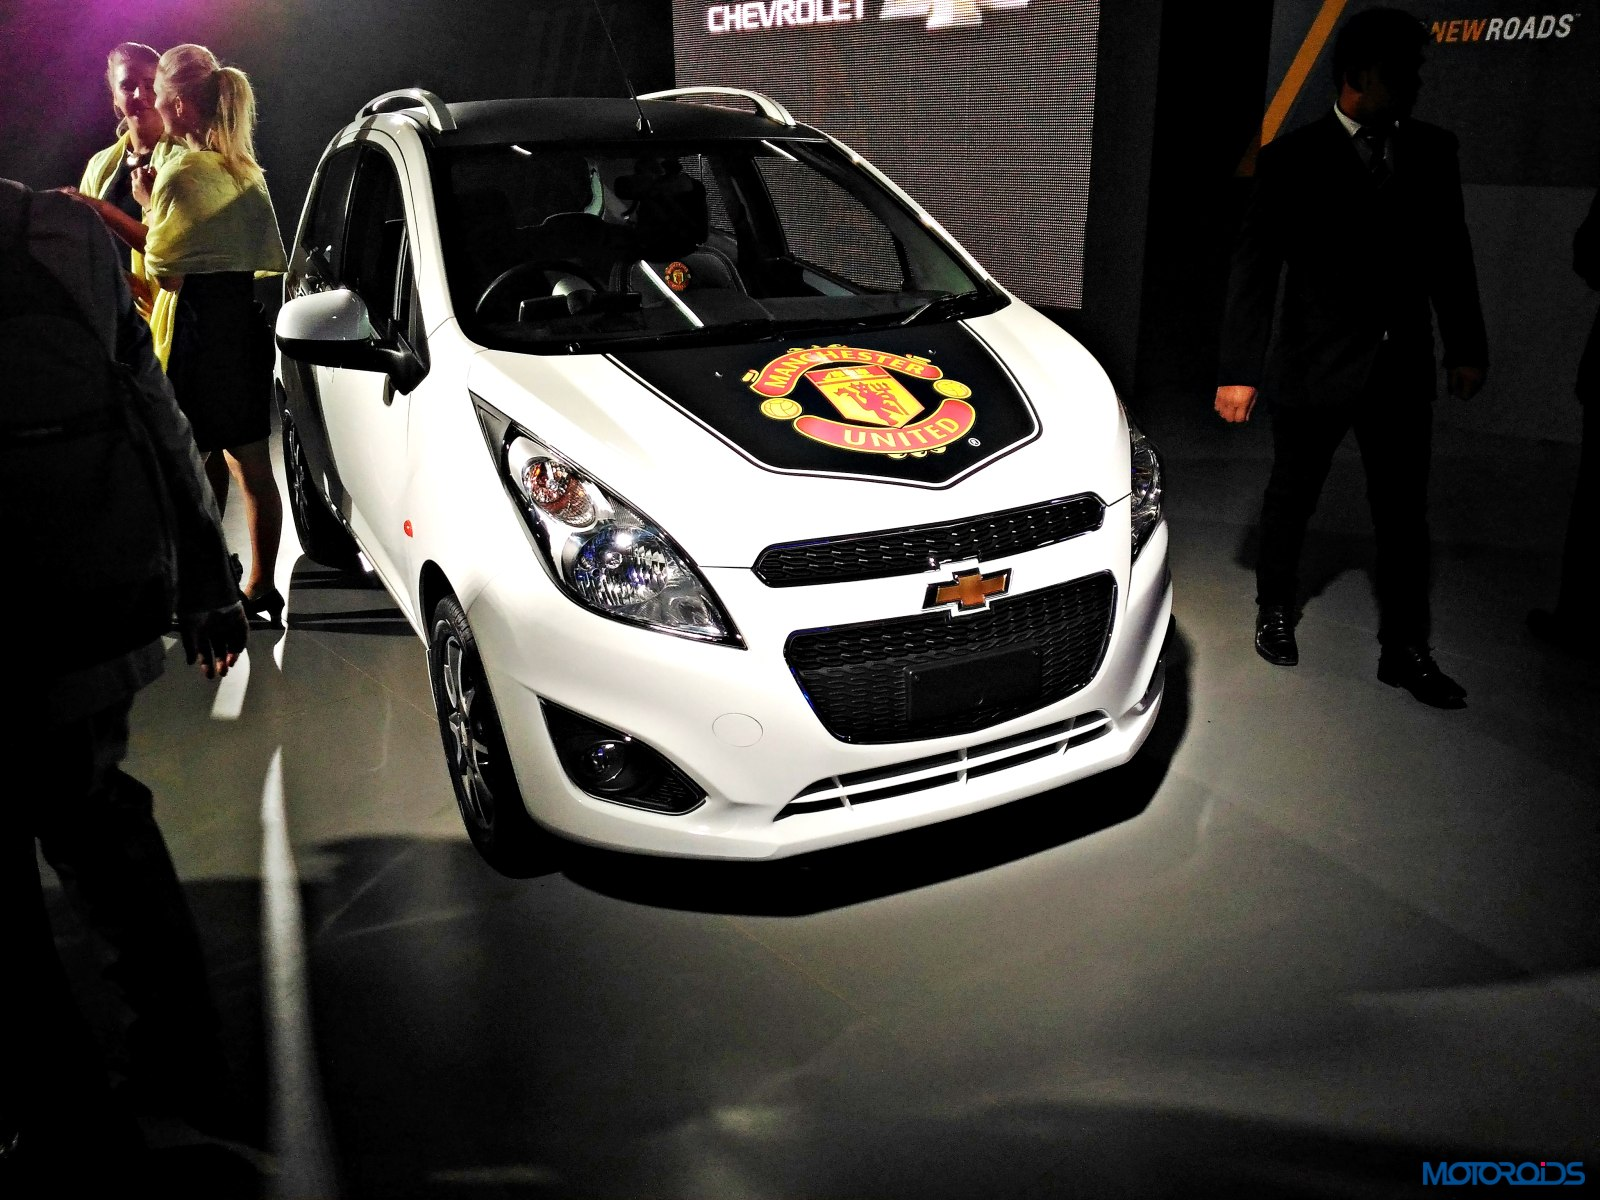 Chevrolet Beat Manchester United Auto Expo 2016